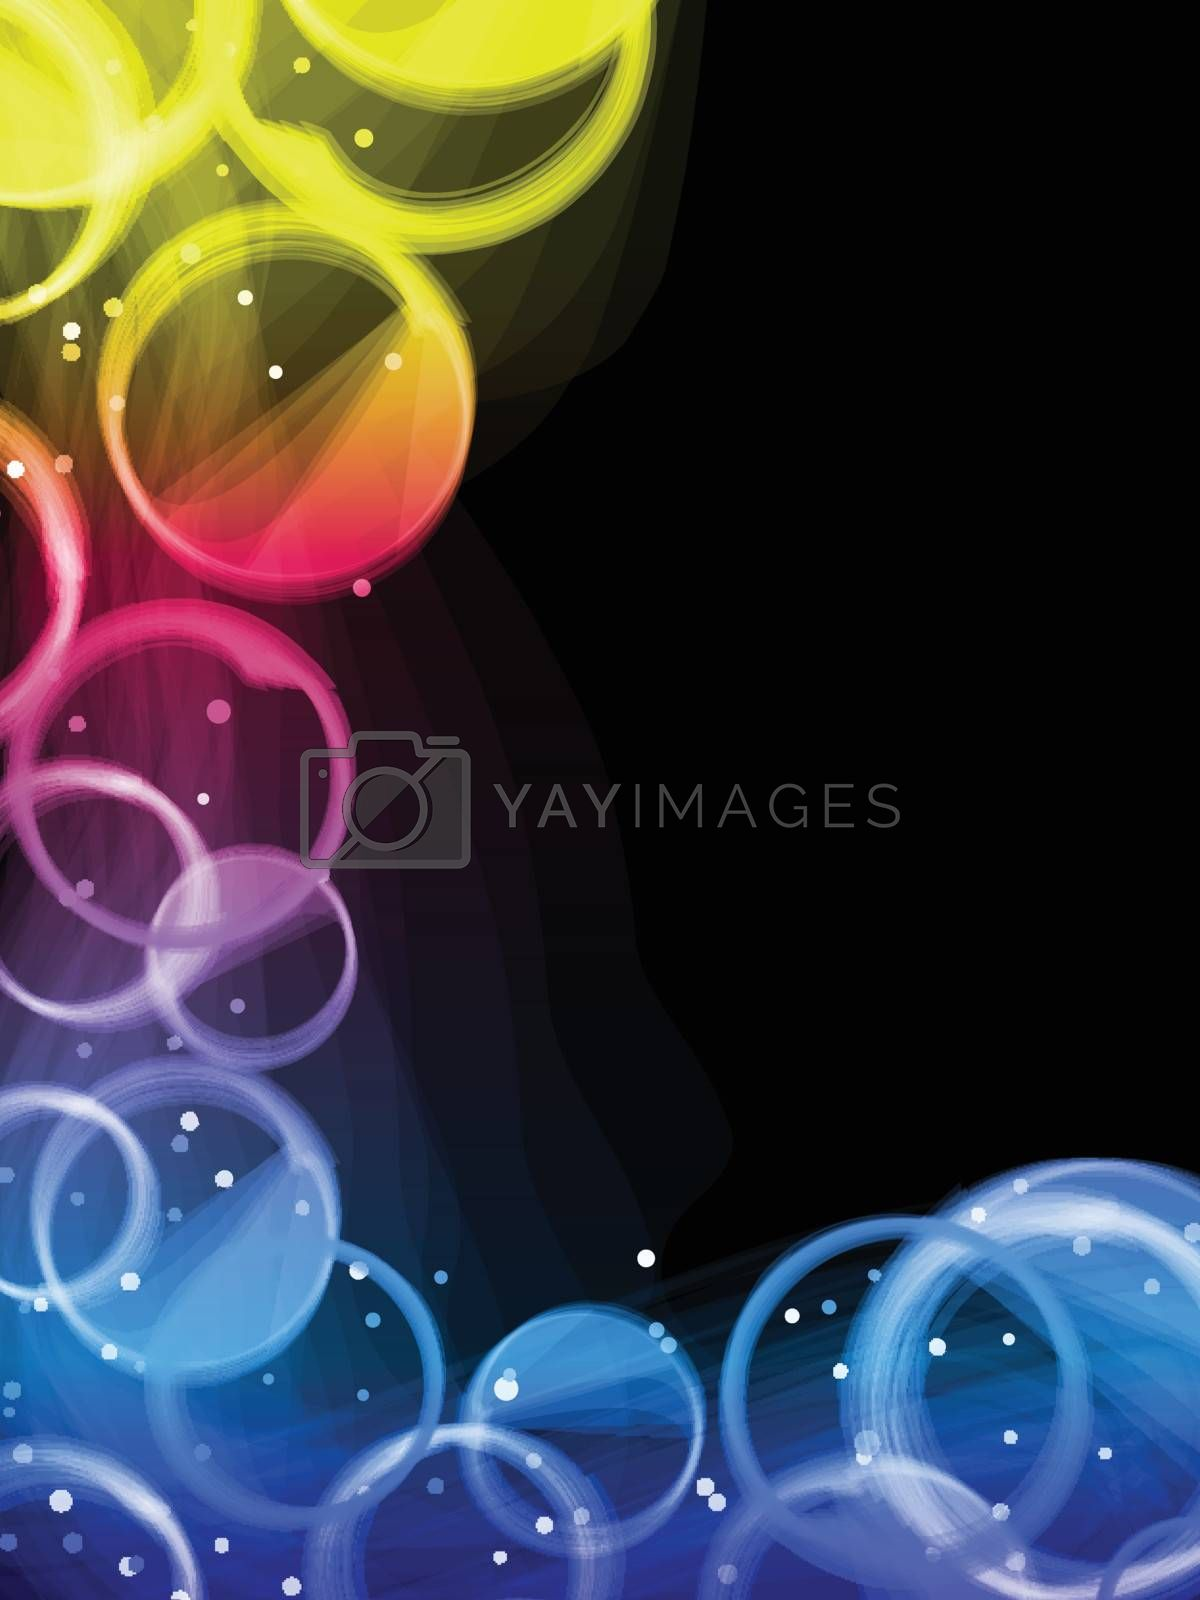 Royalty free image of Abstract colorful circles background. by gubh83